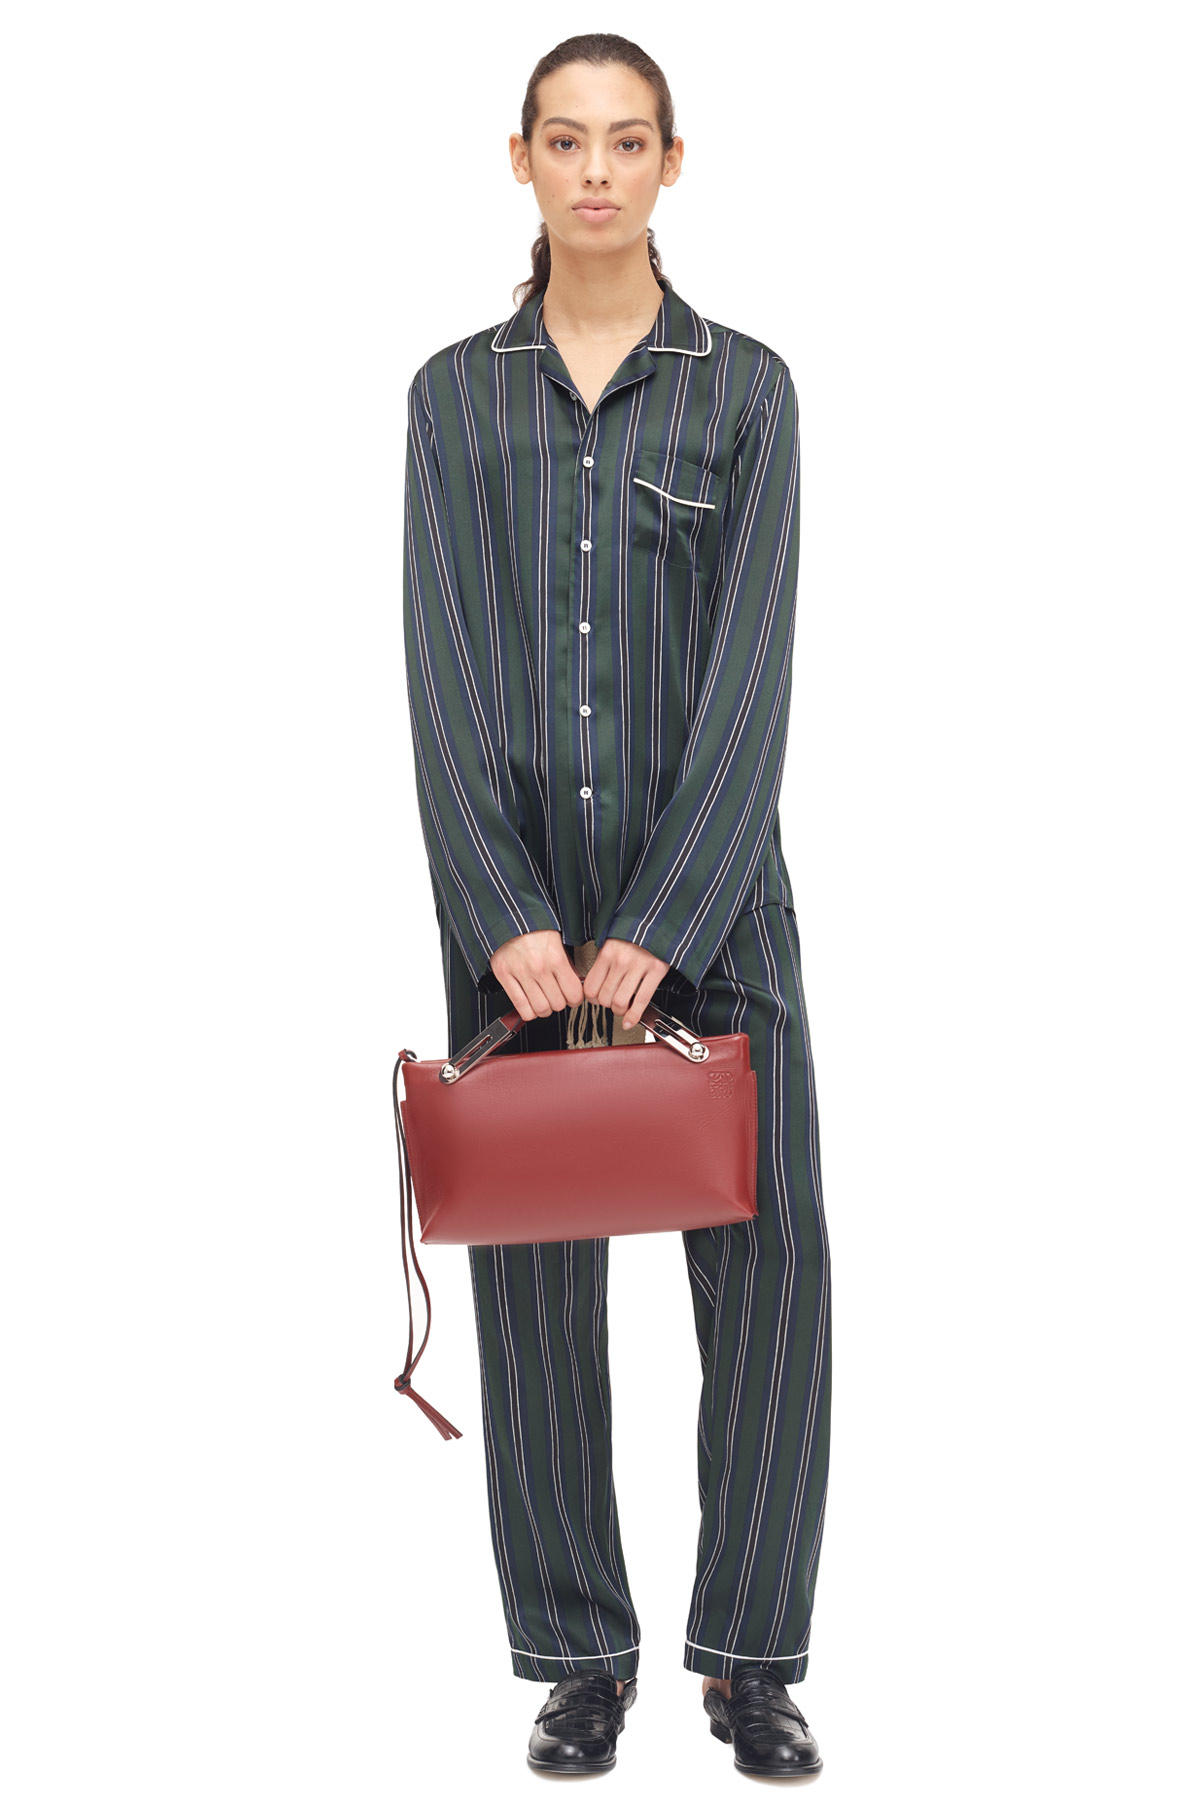 LOEWE Stripe Pyjama Trousers Green/Navy Blue front